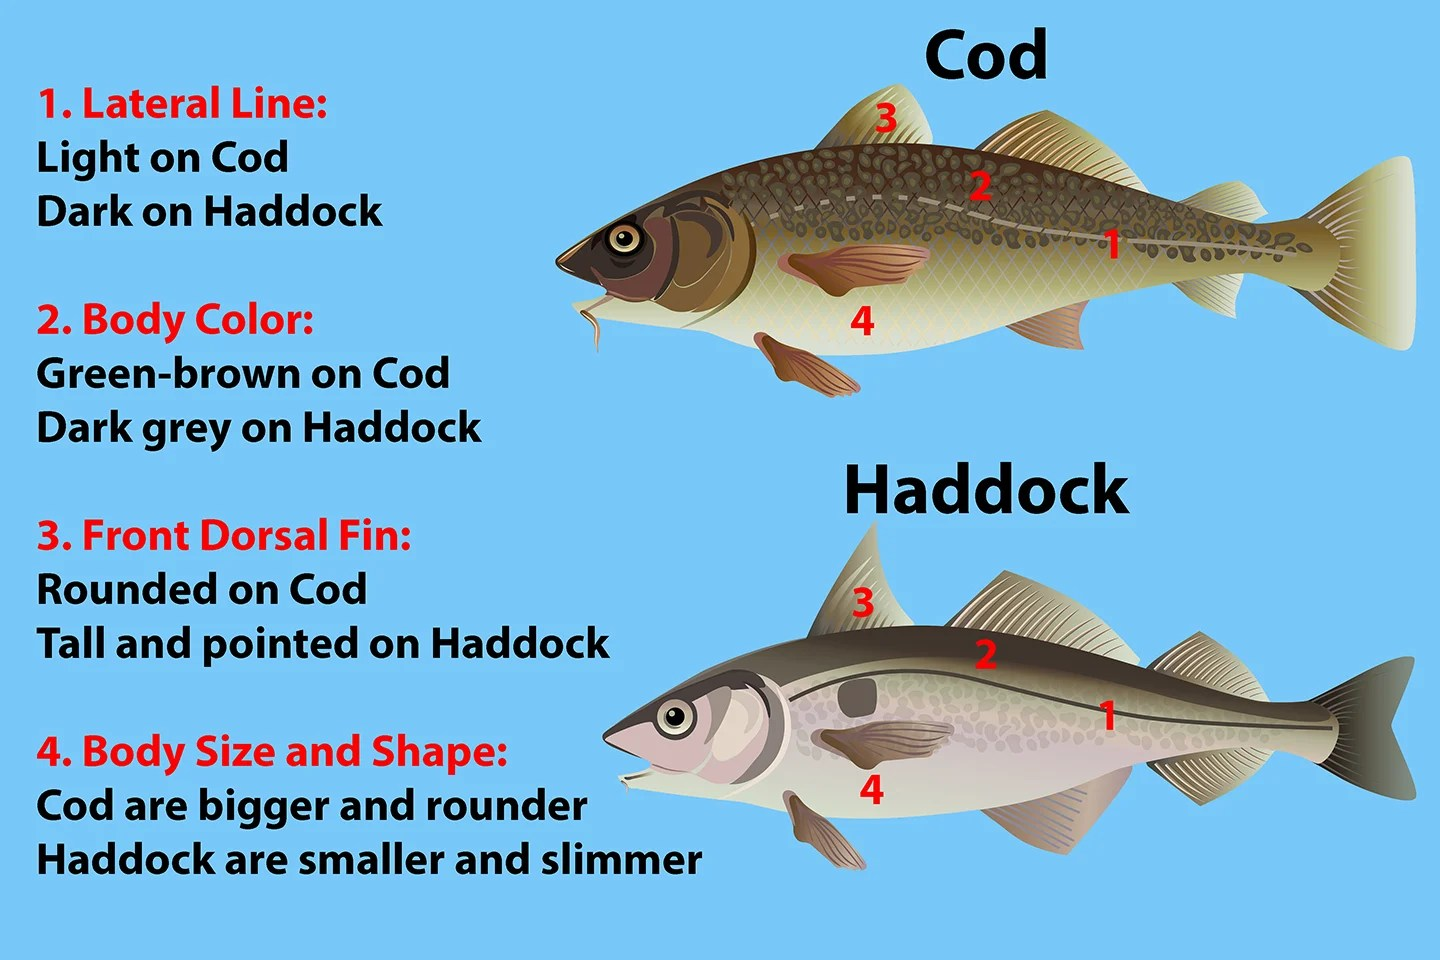 """A comparison of Cod vs Haddock, showing how to tell them apart. Cod is above, Haddock is below. To the left, text reads """"1. Lateral Line: light on Cod, dark on Haddock. 2. Body color: green-brown on Cod, dark grey on Haddock. 3. Front Dorsal Fin: Rounded on Cod, tall and pointed on Haddock. 4. Body Size and Shape"""" Cod are bigger and rounder, Haddock are smaller and slimmer."""""""